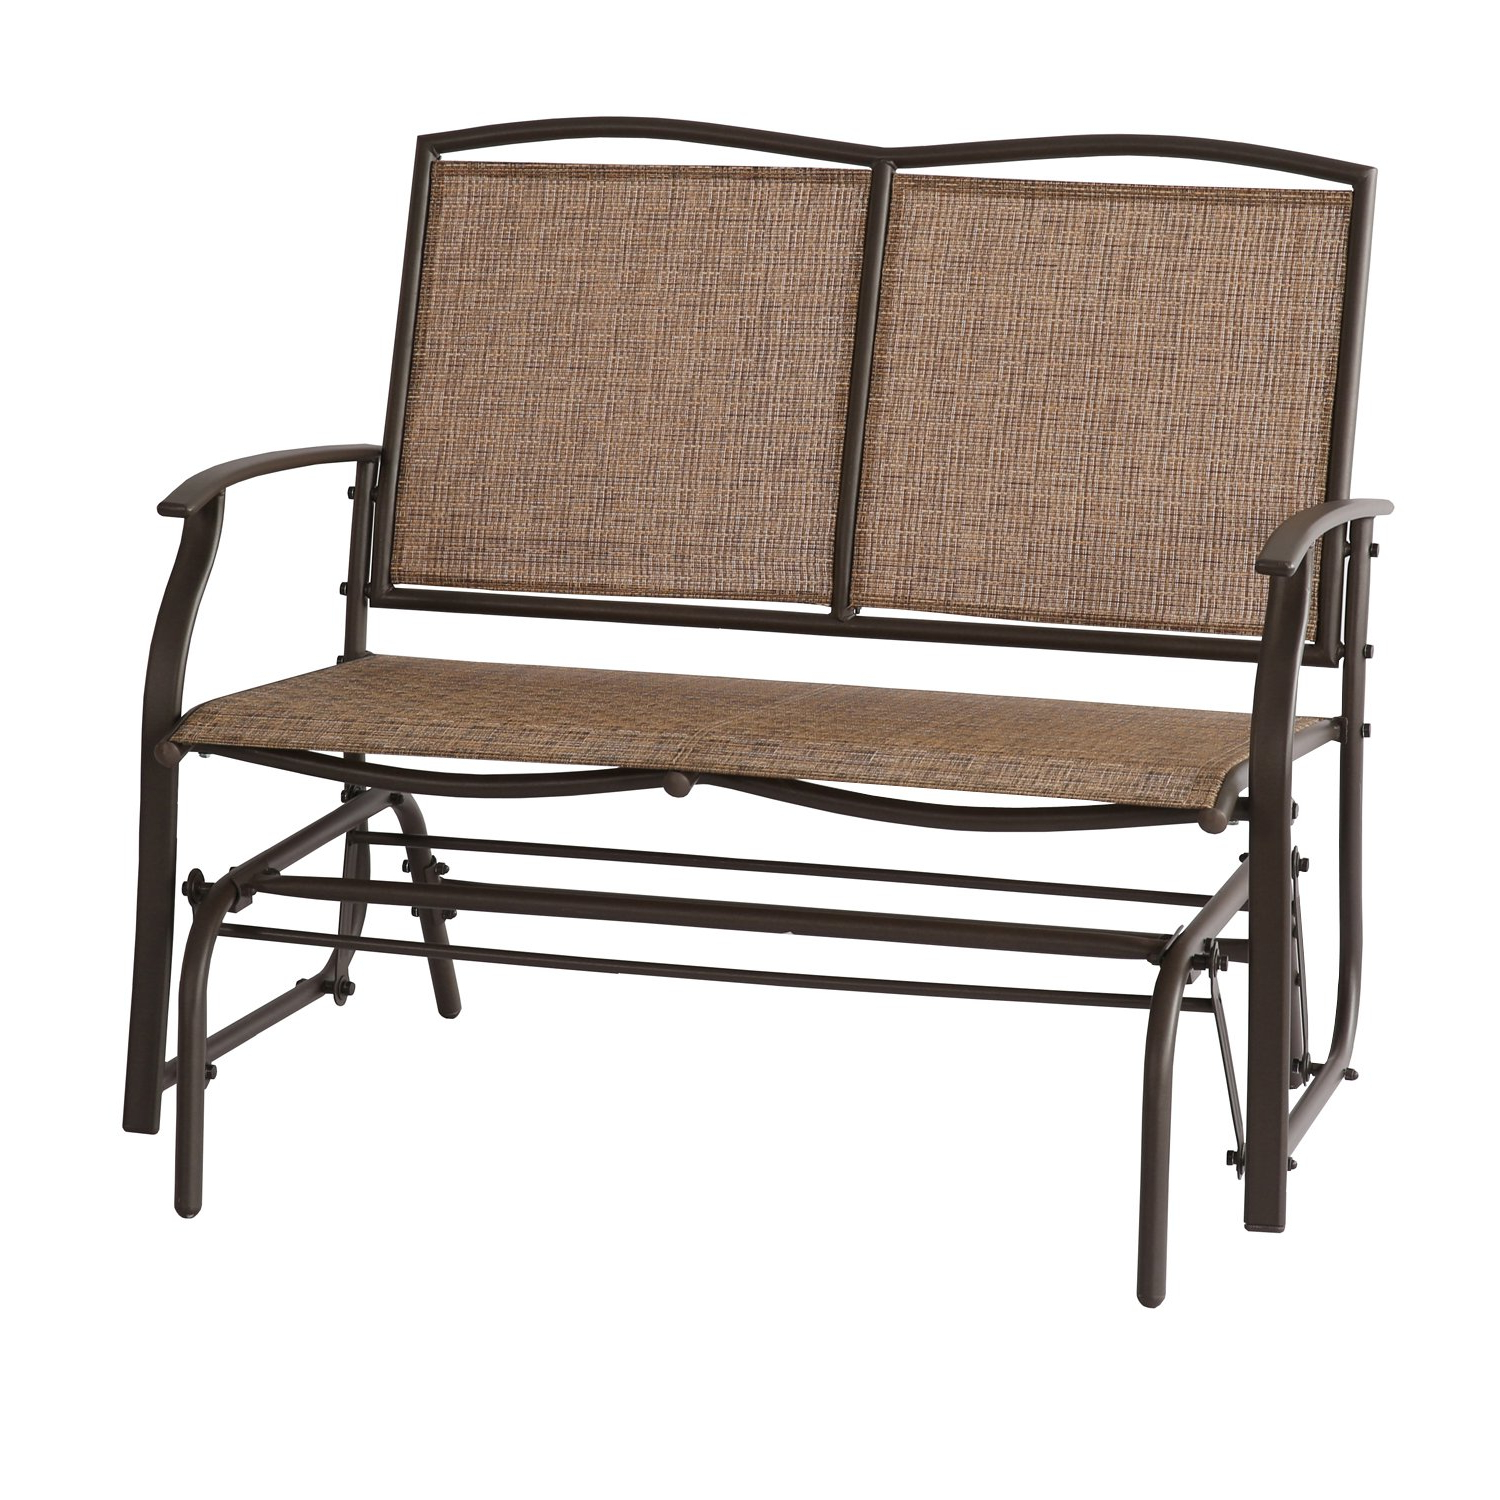 Cheap Patio Furniture Glider Bench, Find Patio Furniture Pertaining To 2019 2 Person Antique Black Iron Outdoor Gliders (View 30 of 30)